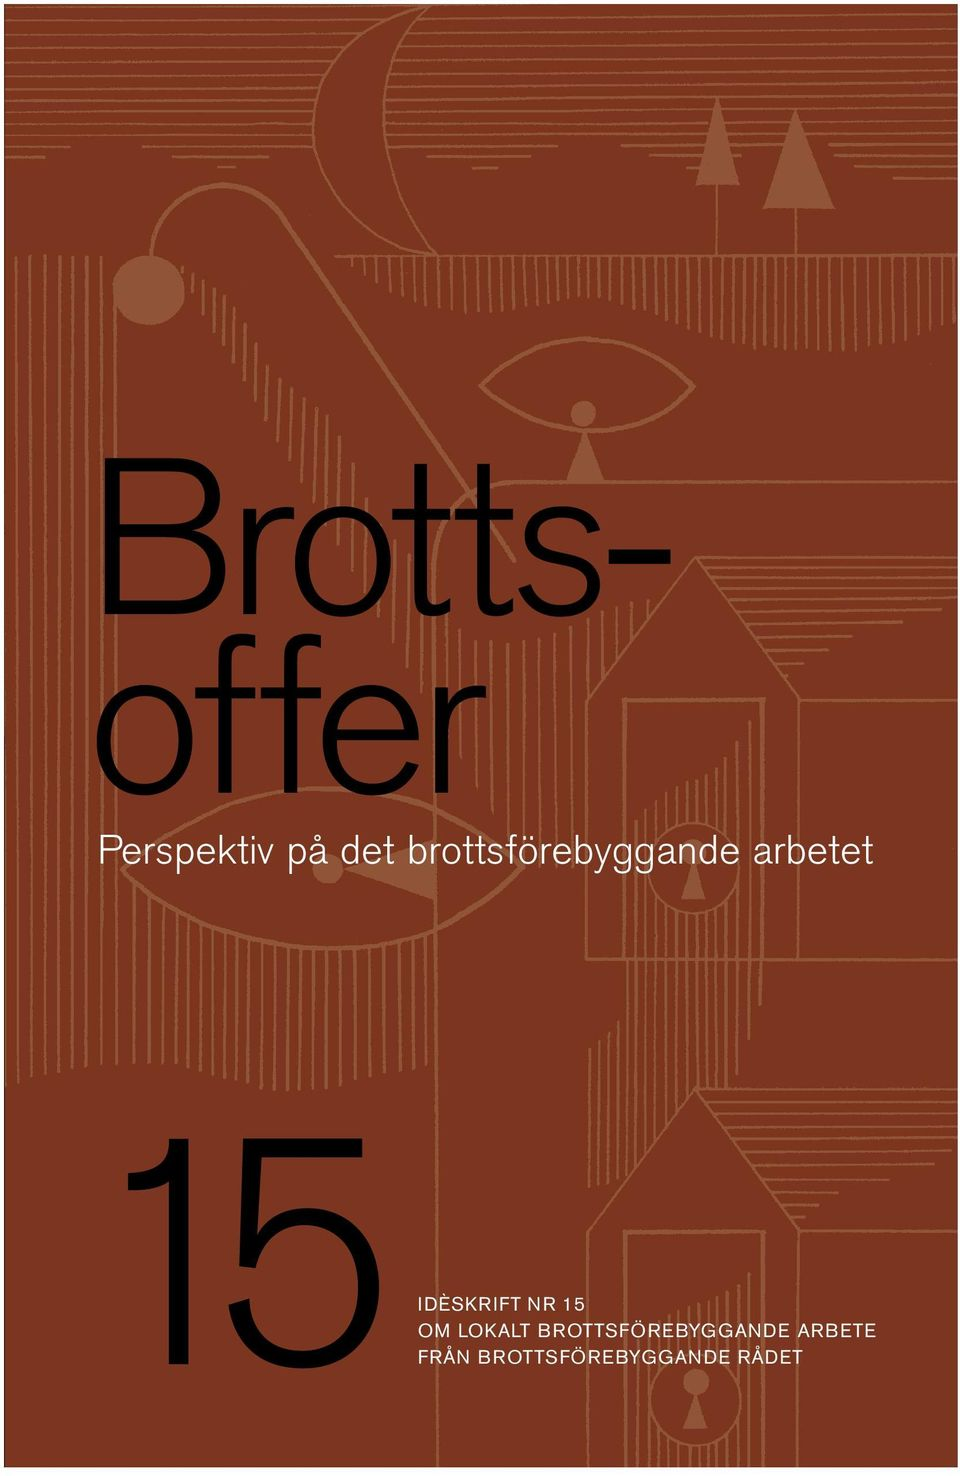 IDÈSKRIFT NR 15 OM LOKALT BROTTS